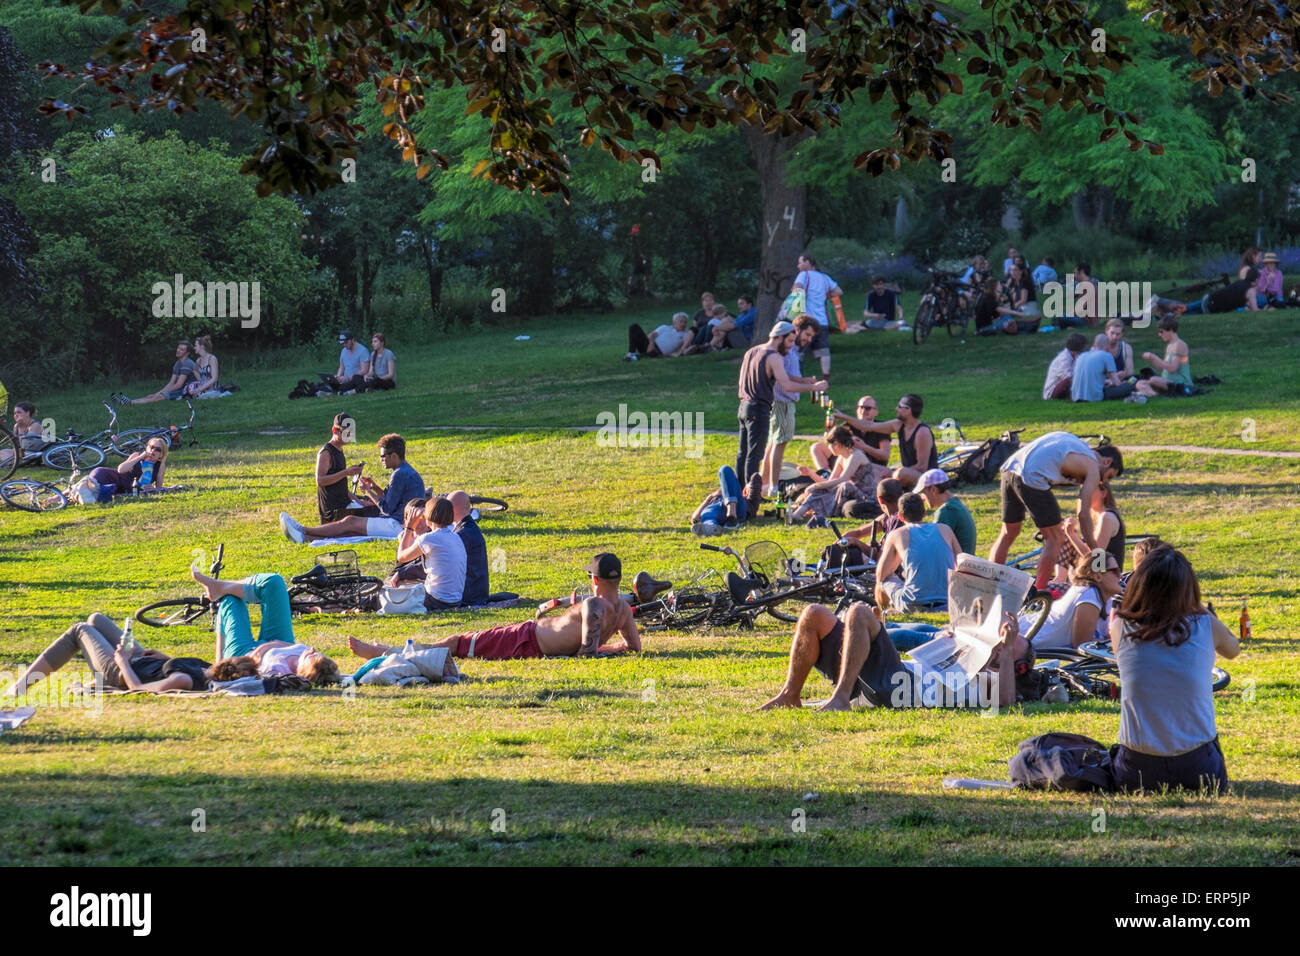 Berlin, Germany. 05th June, 2015. Berliners relax in the park as warm weather  arrives in the capital city. Summer - Stock Image